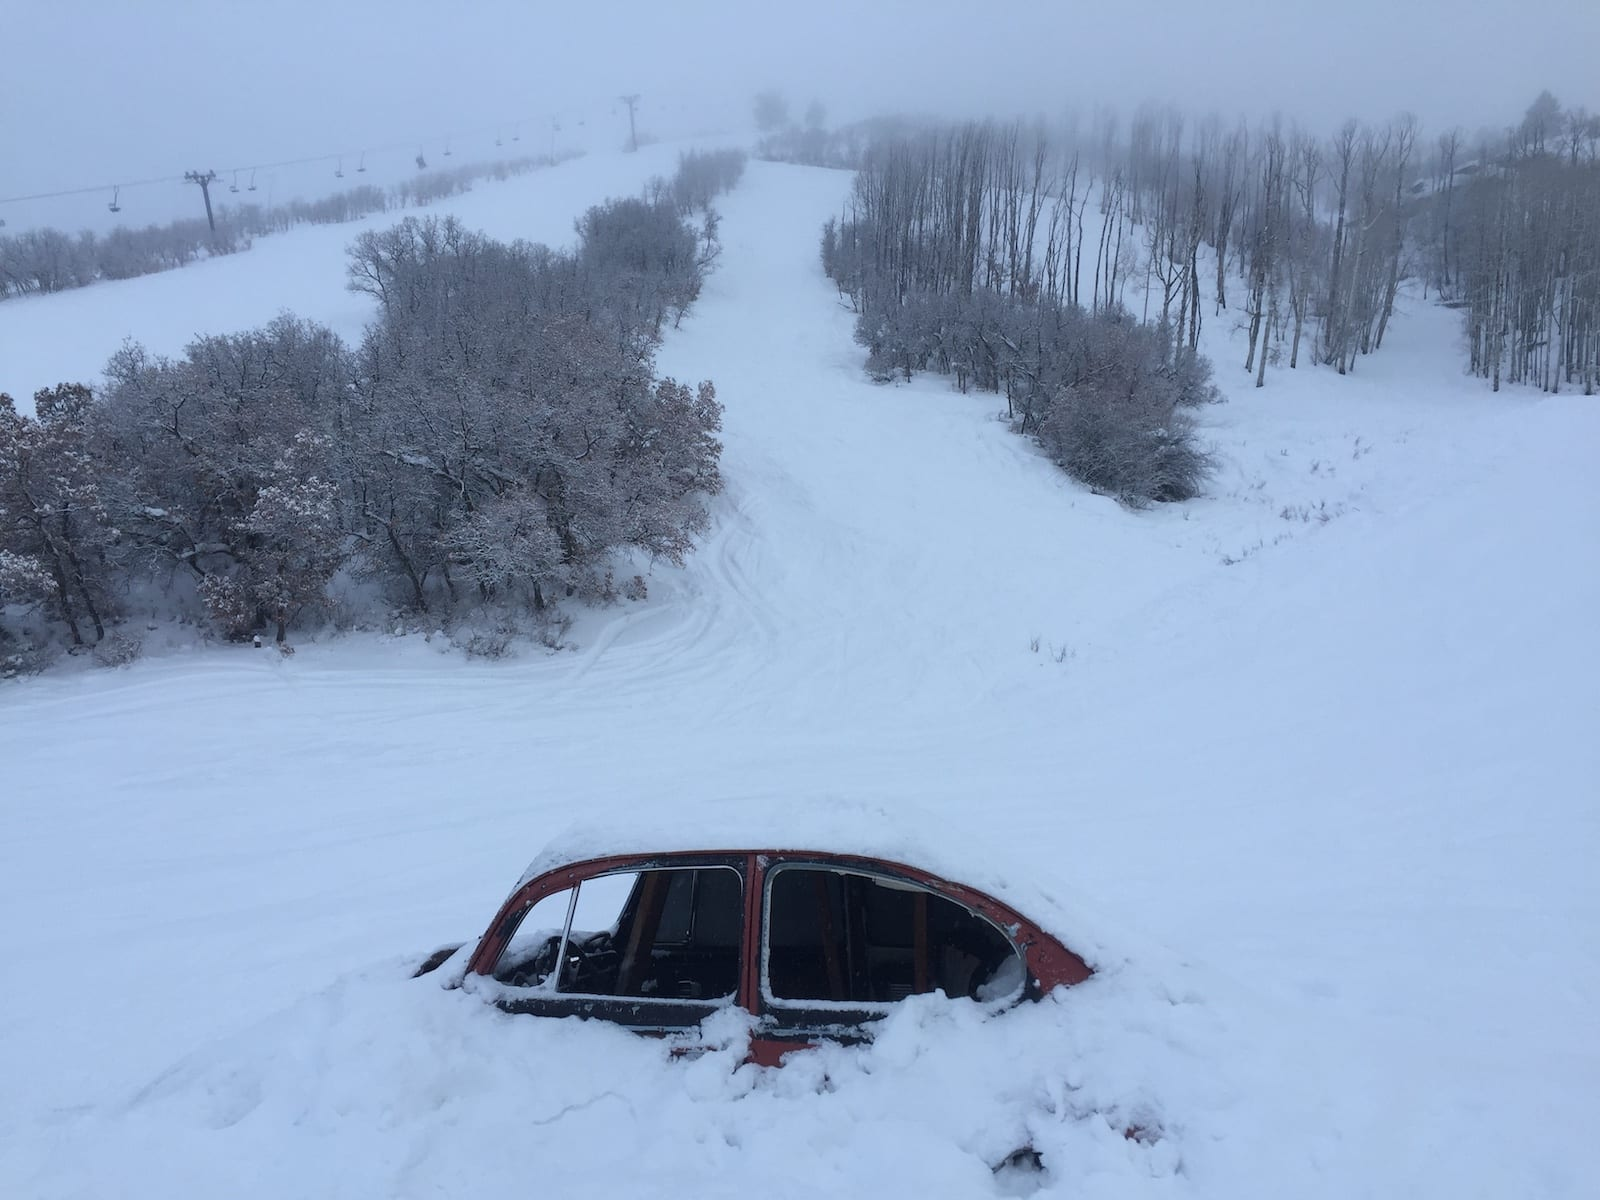 Hesperus Ski Area Punch Buggy Car Buried in Snow